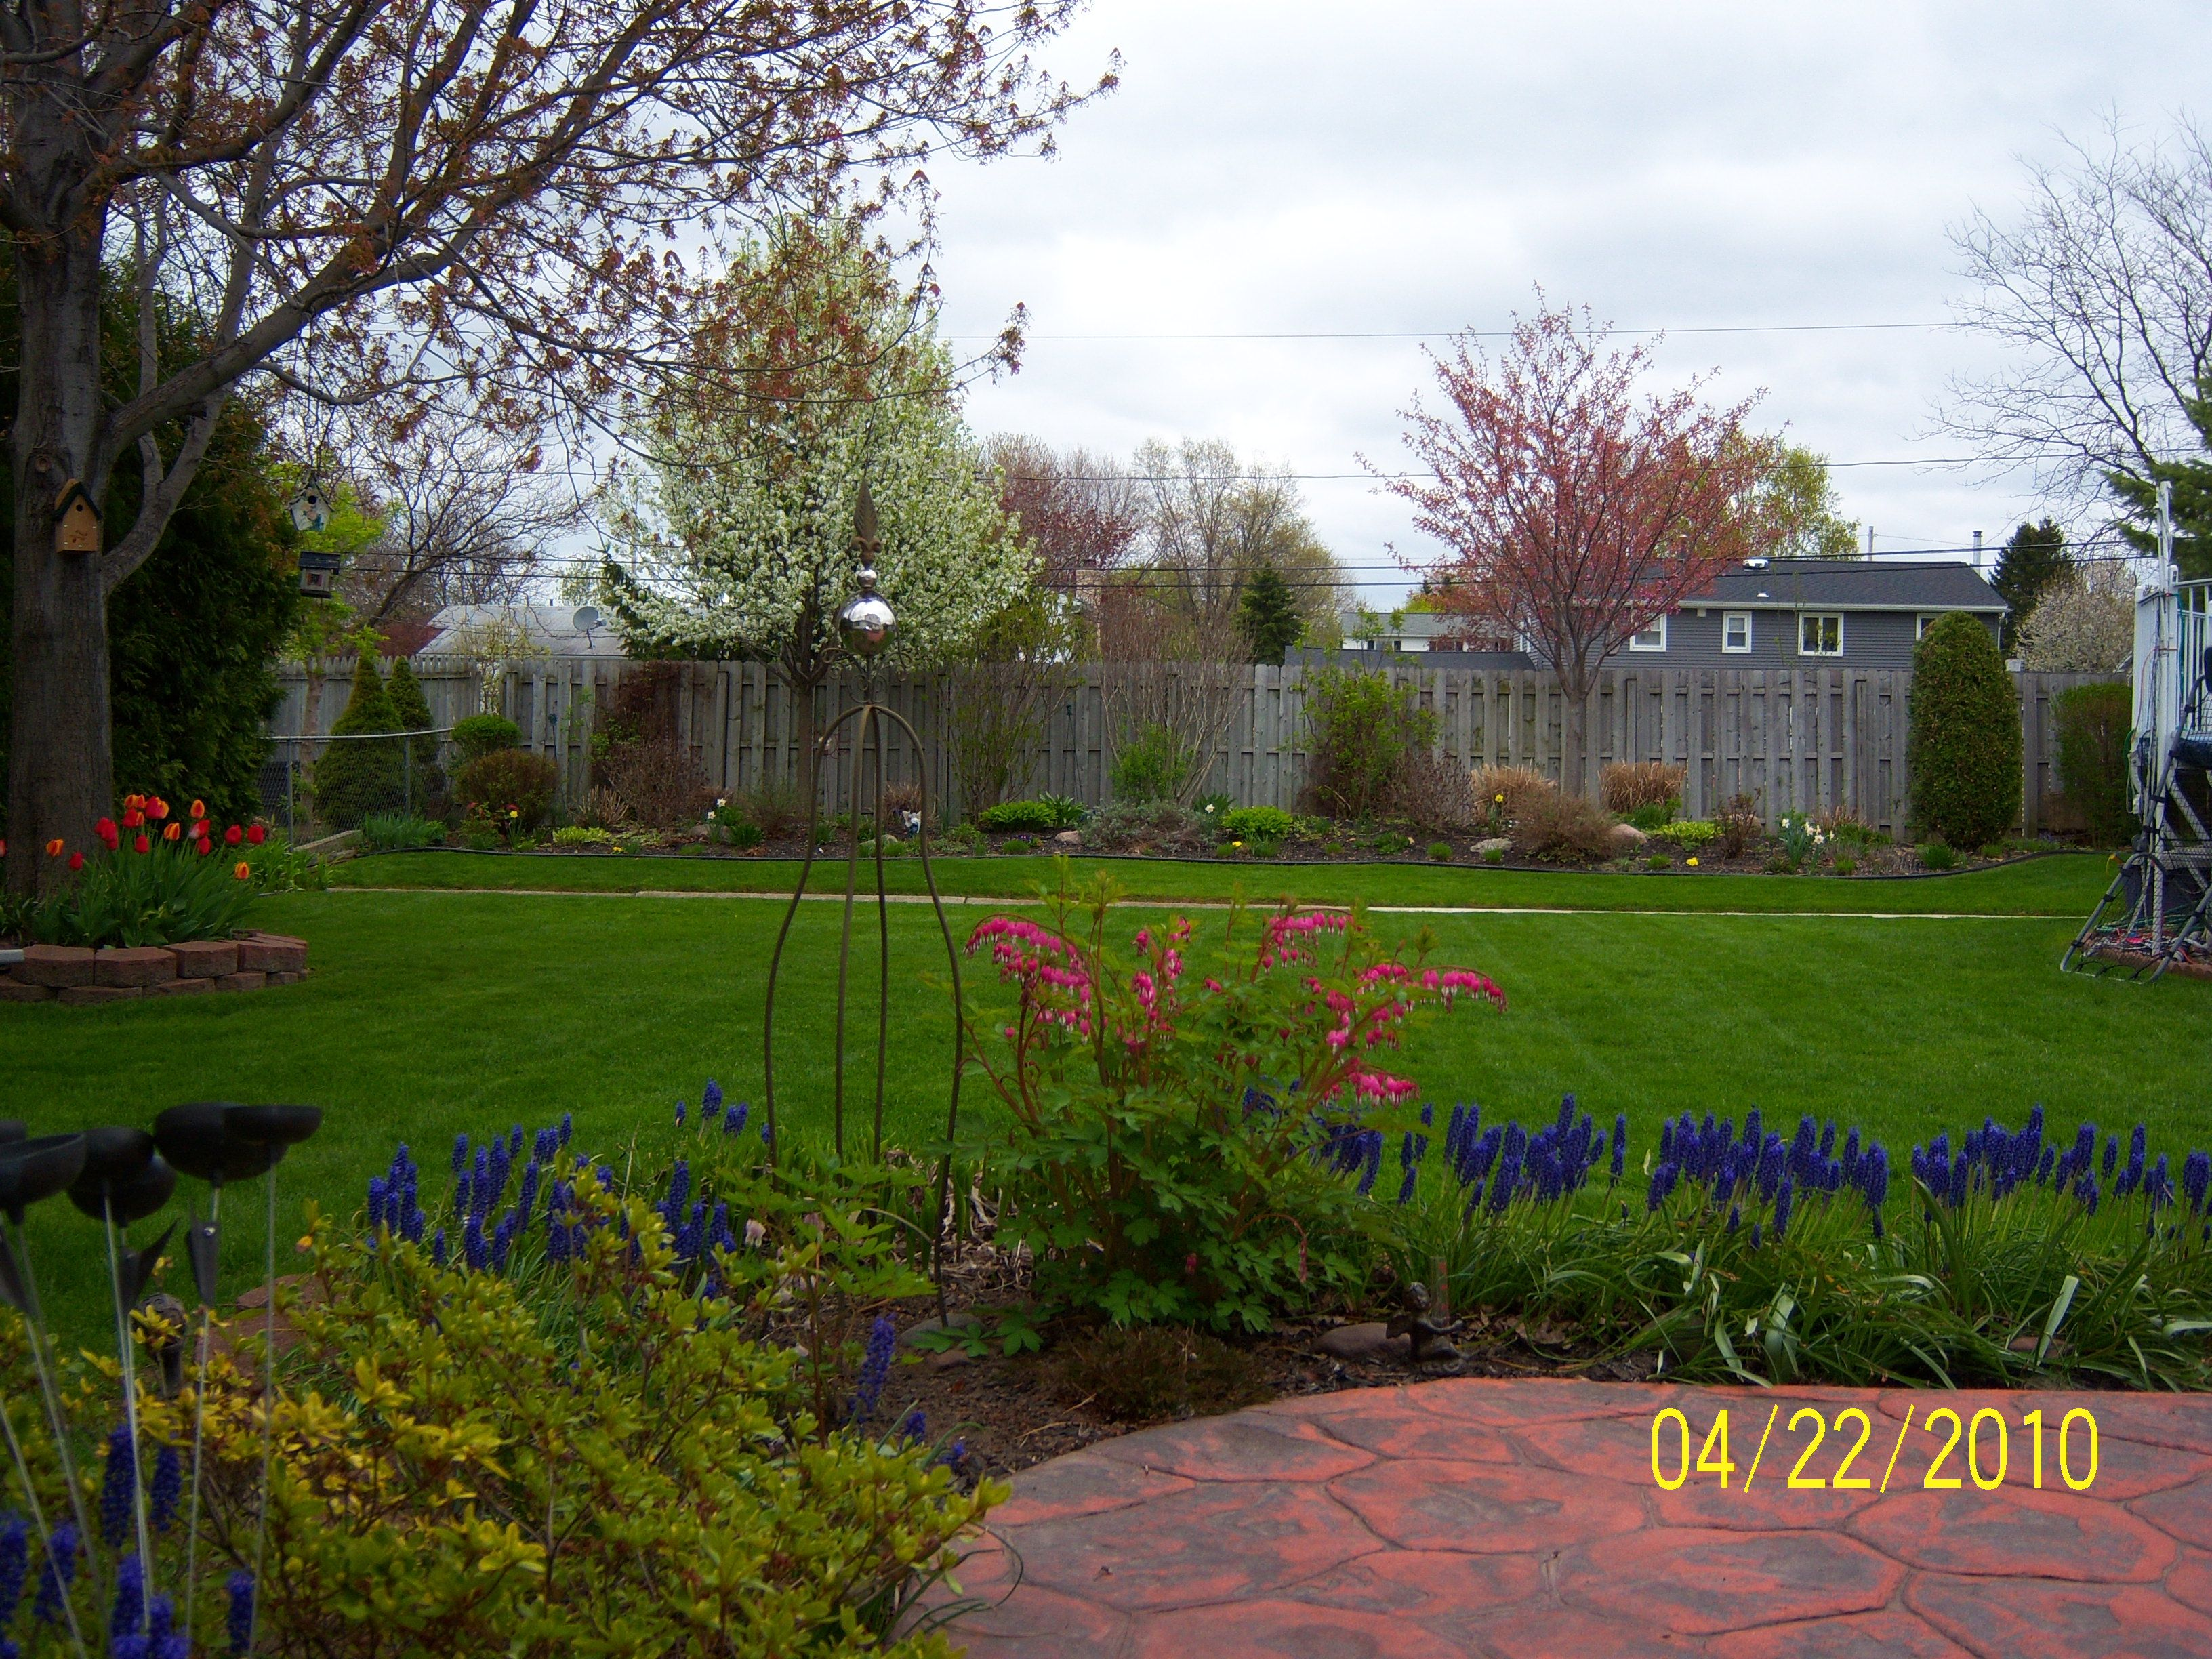 Our backyard in spring!